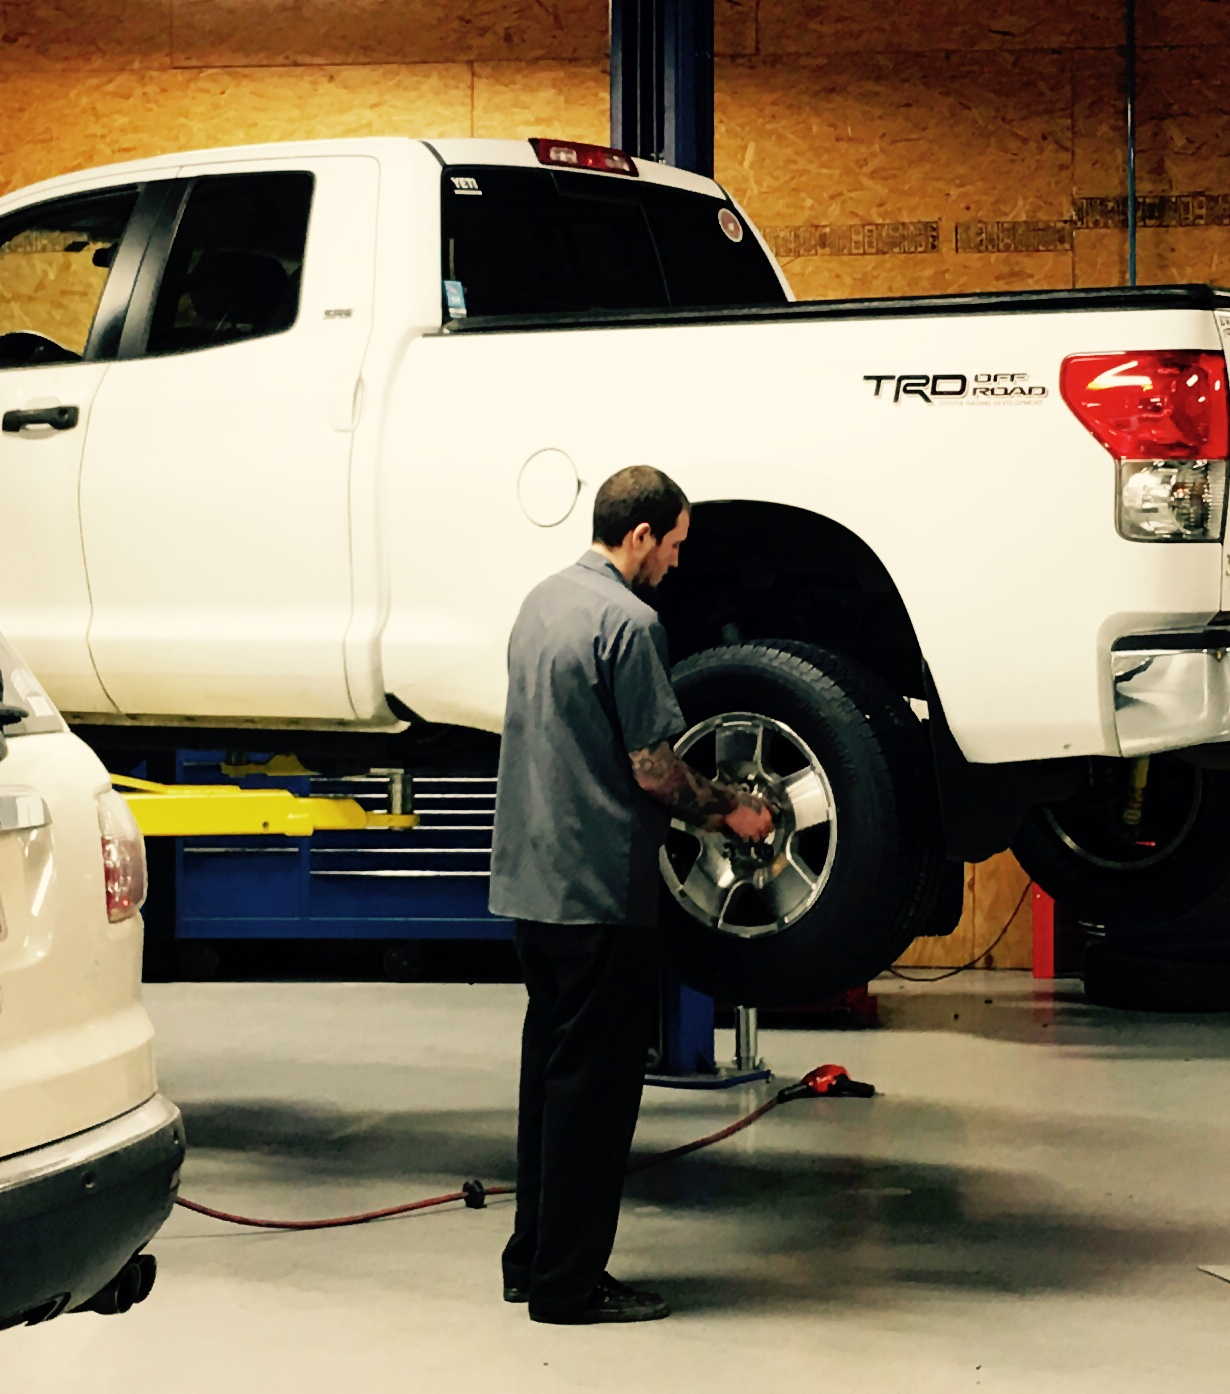 We remove your vehicle's tires to be able to do a complete brake inspection. Providing peace of mind for our customers!